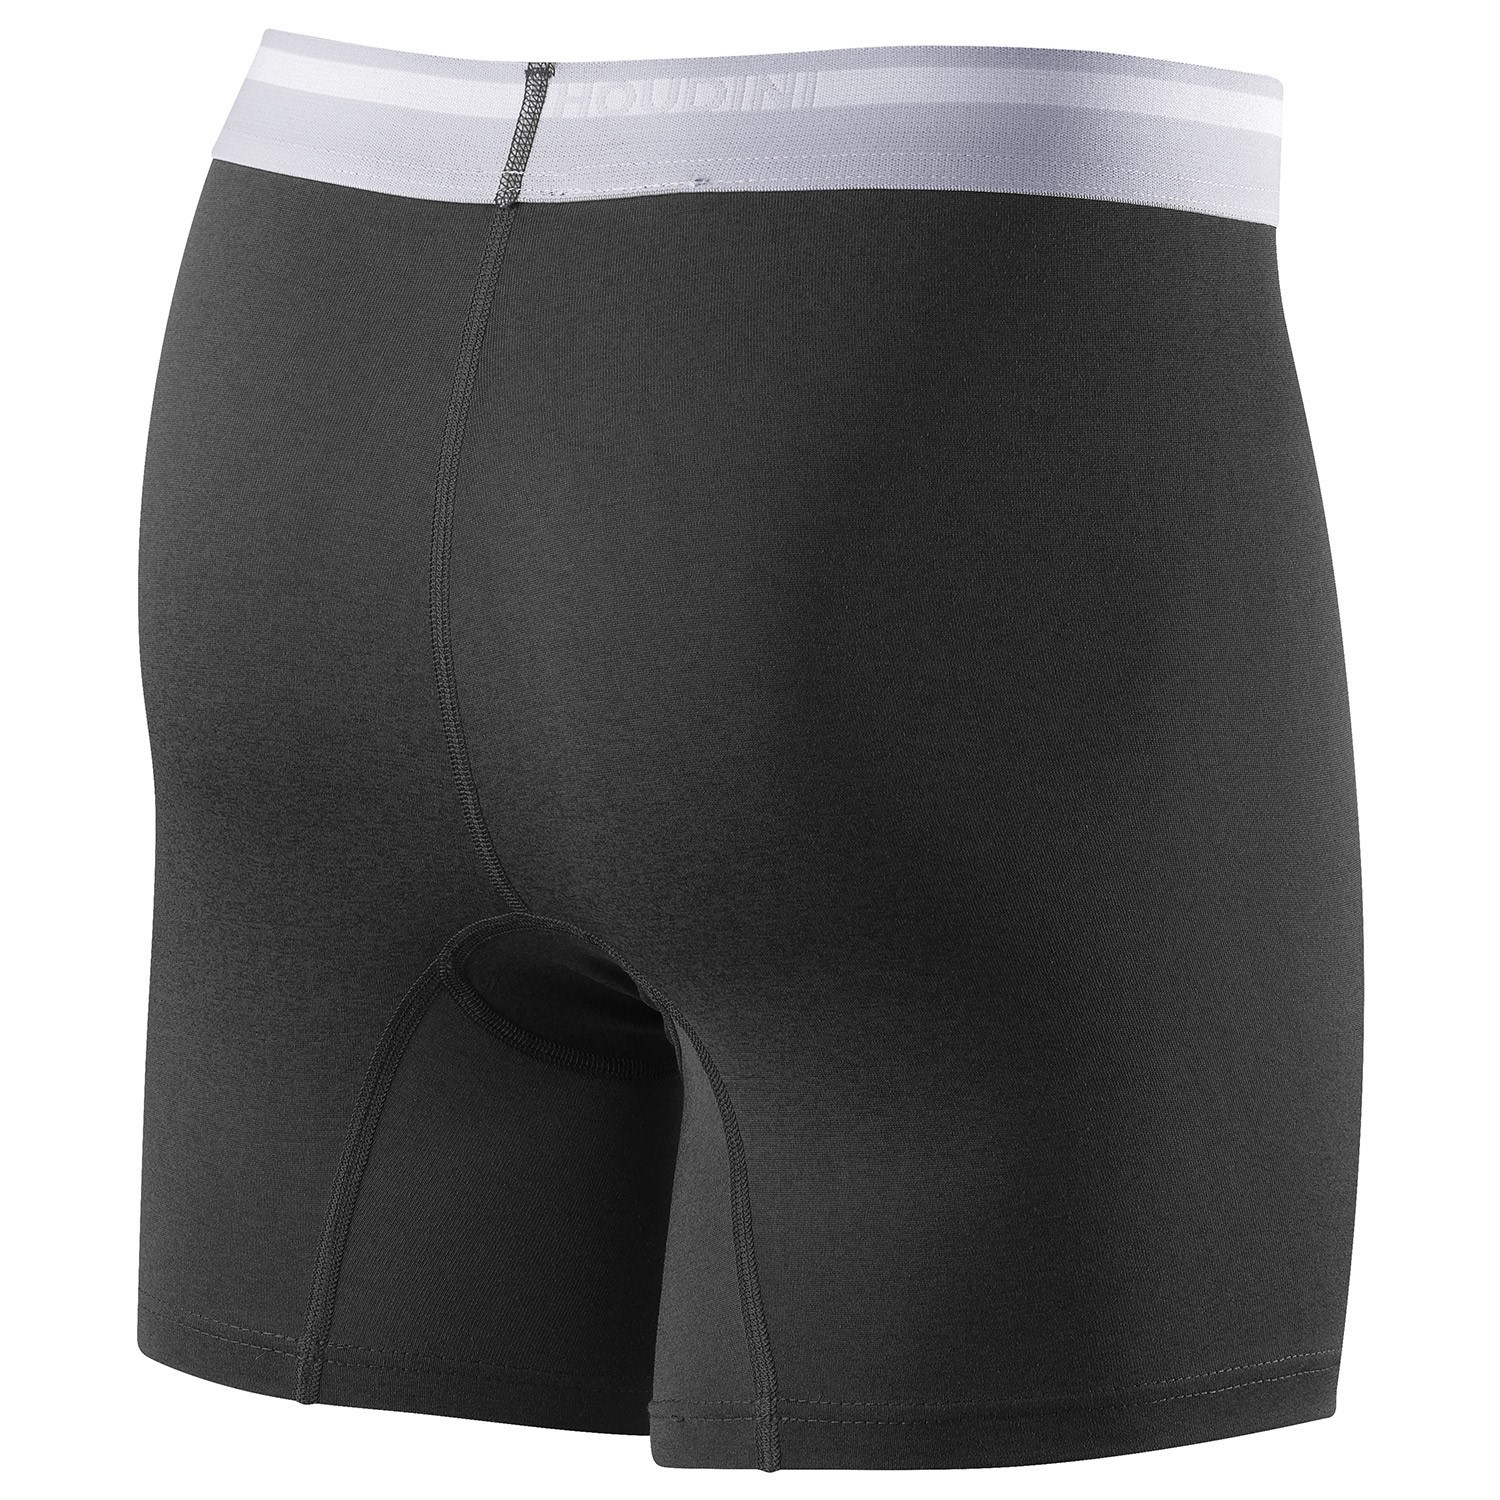 5f5b02a6afb7e4 Houdini Men Dynamic Boxers - Athletic trunks - Athletic apparel - Sport -  Timarco.eu